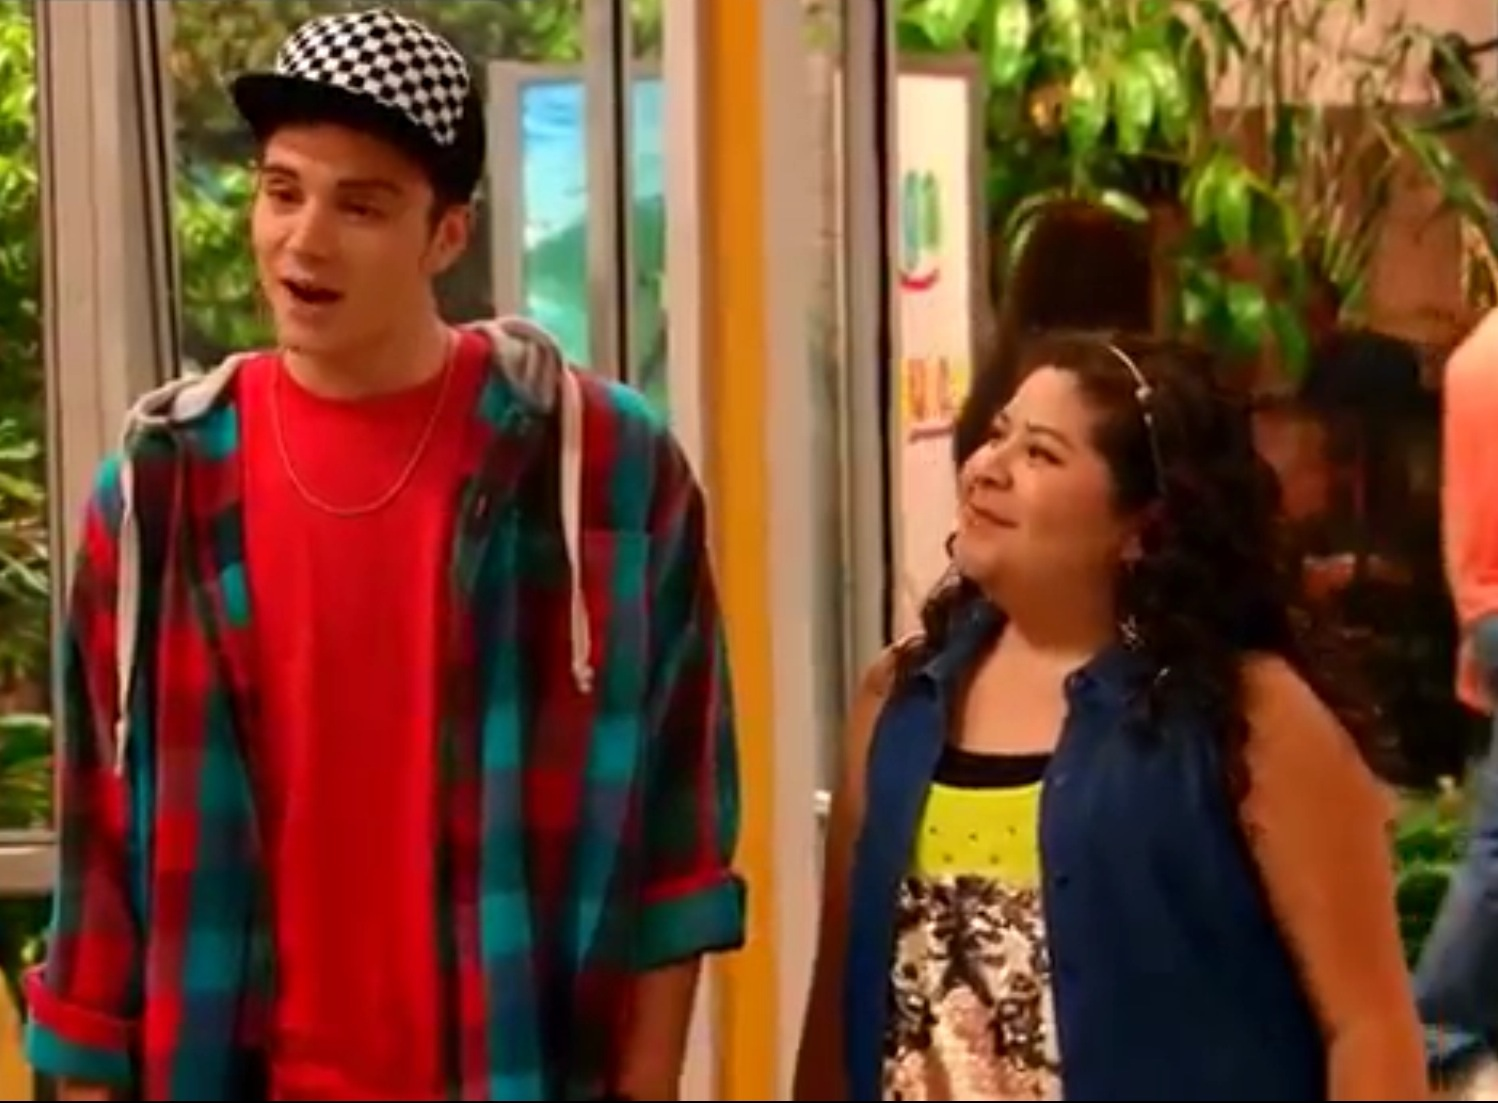 SHERRY: Who is dez from austin and ally dating